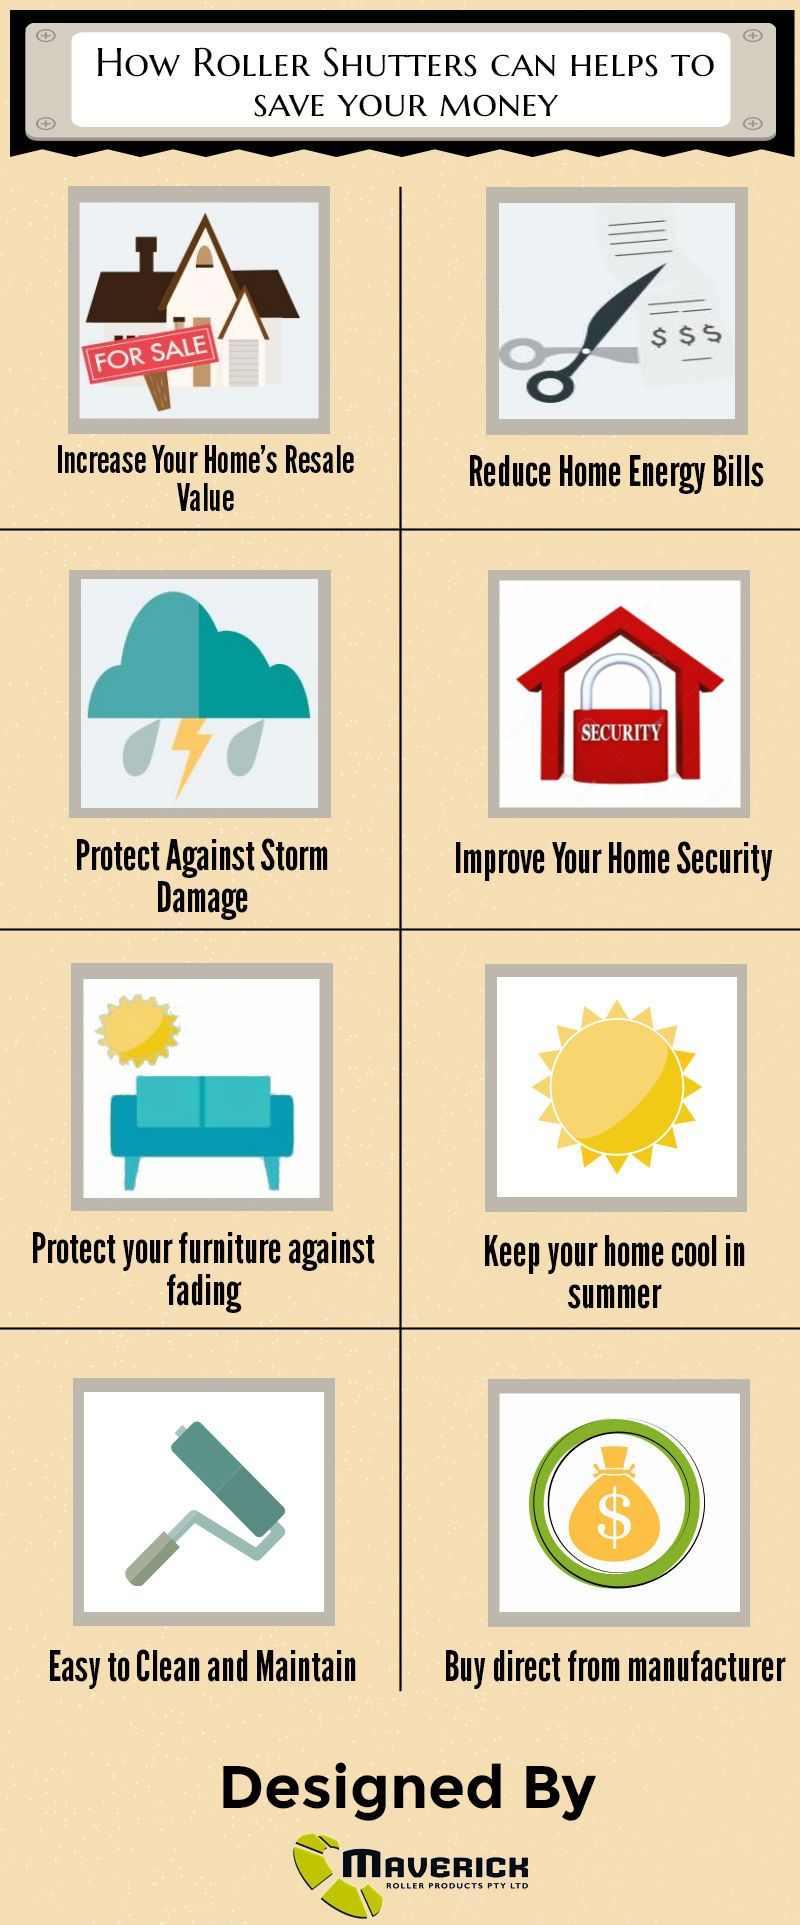 Roller Shutters Does Not Only Protects Your Home It Also Helps To Save Your Money In This Info Graphic Roller Shutters Protecting Your Home Save Your Money